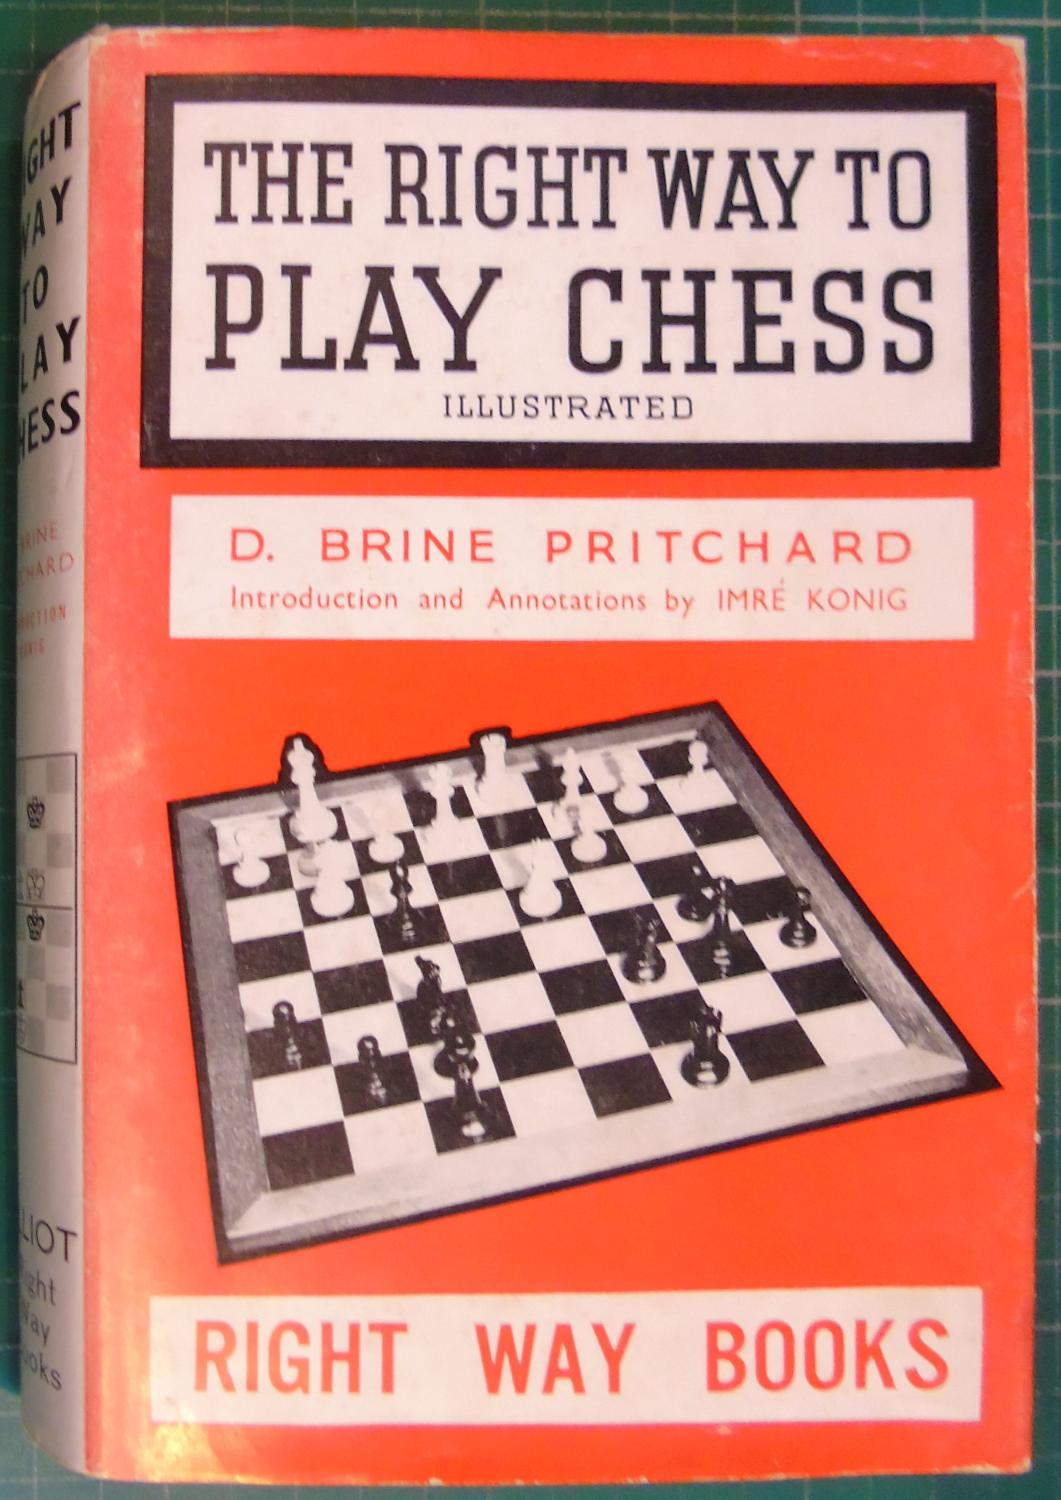 The Right Way to Play Chess, Elliot Right Way Books, DB Pritchard, 1950.